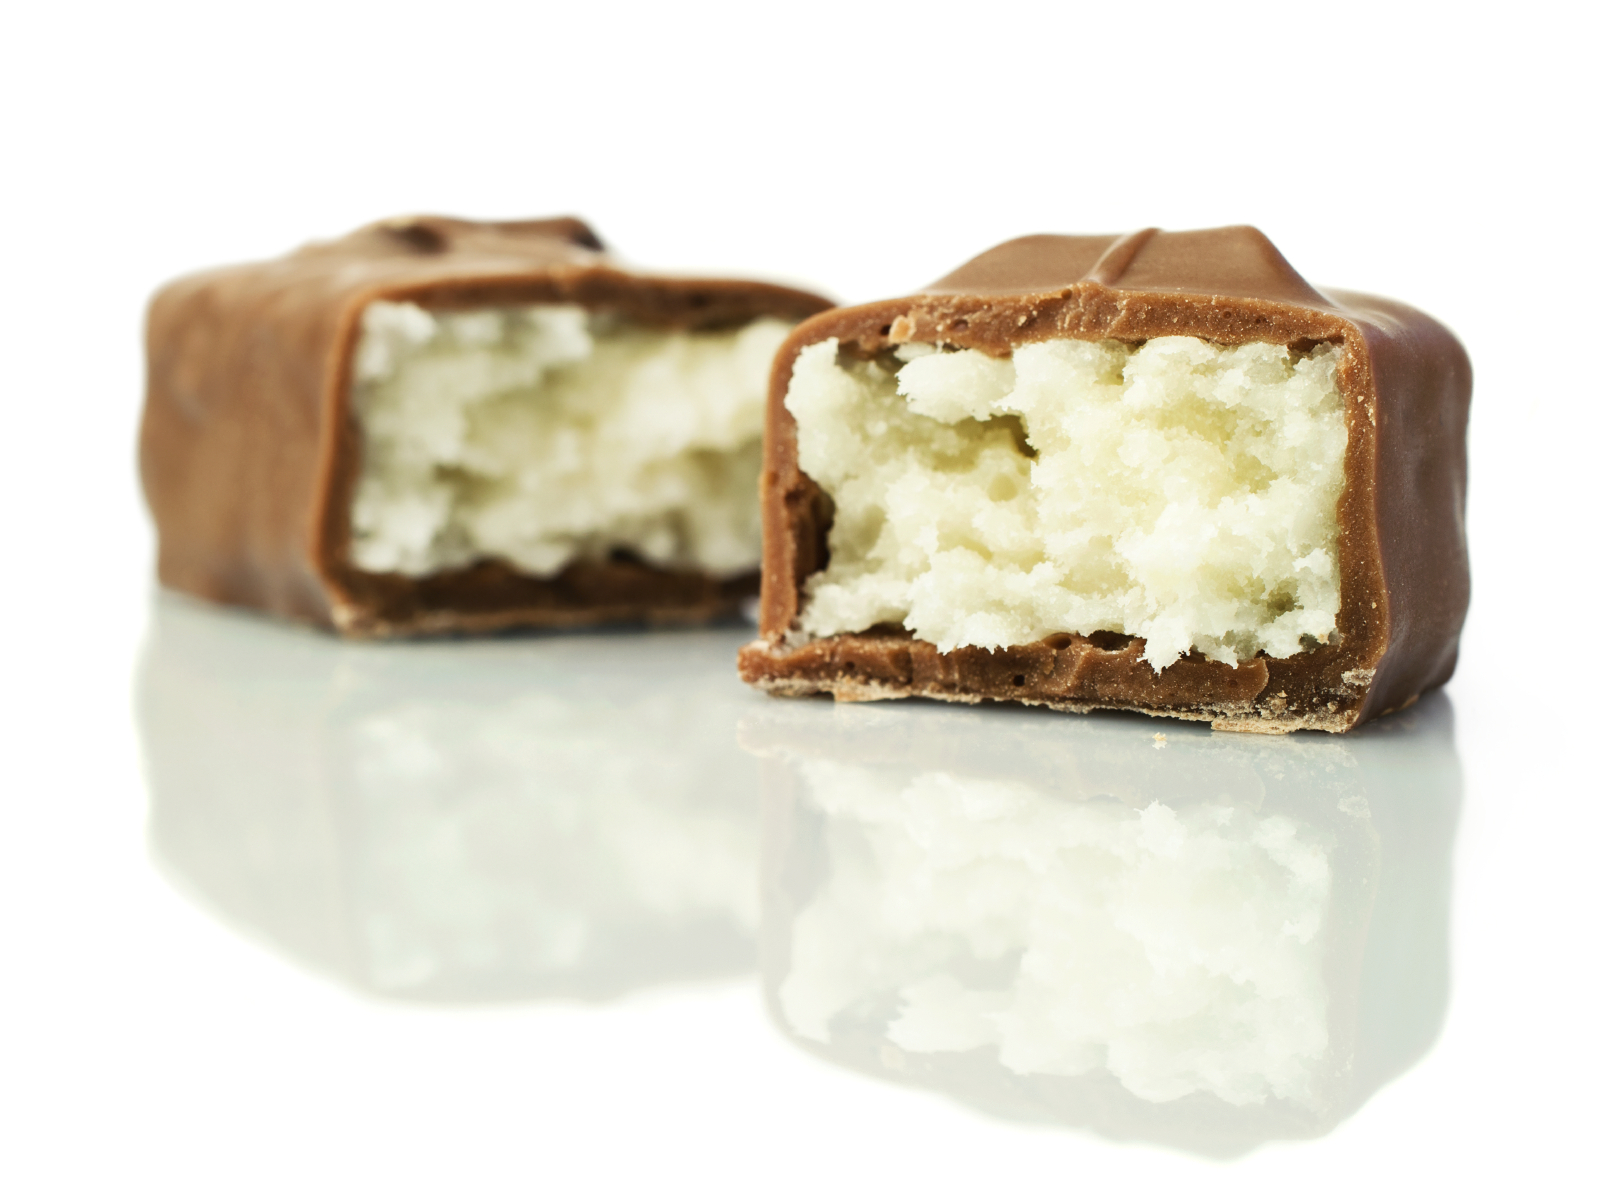 Chocolate bar with coconut